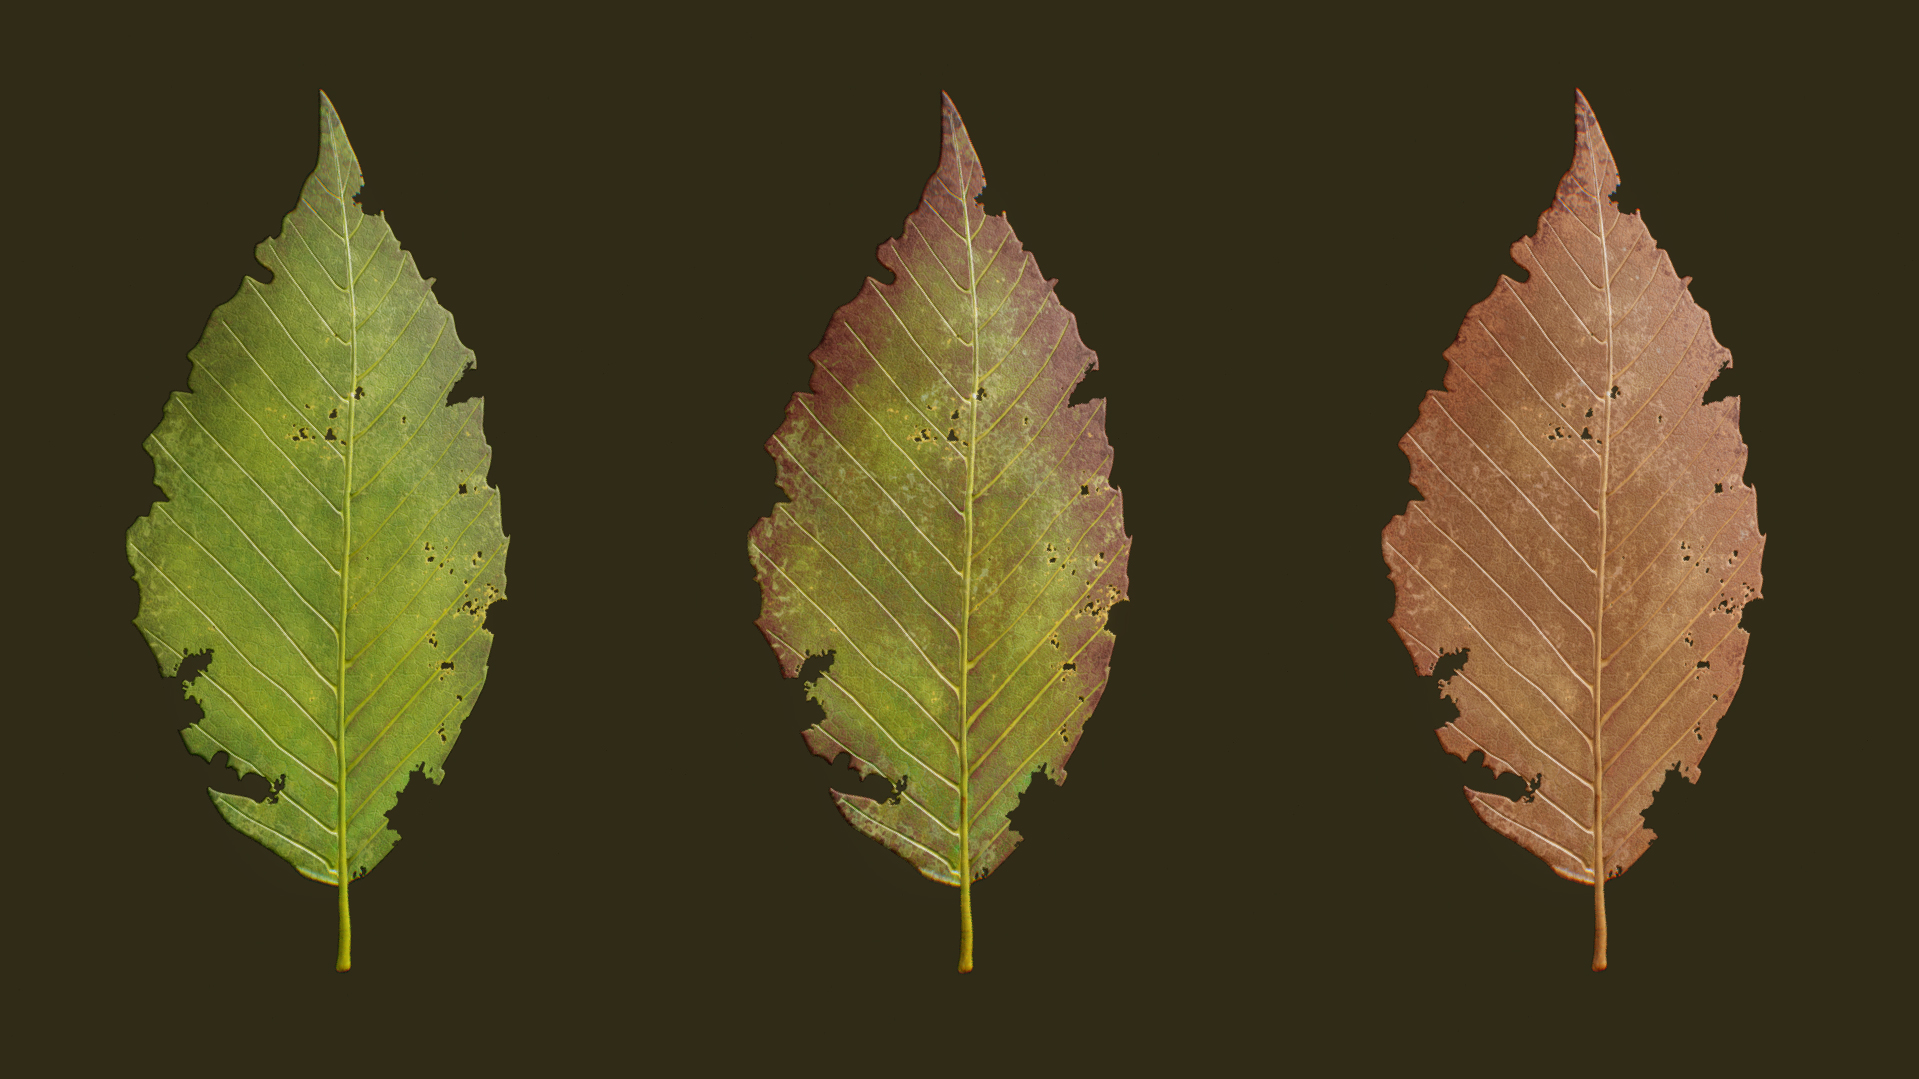 RHE_Leaves04.jpg